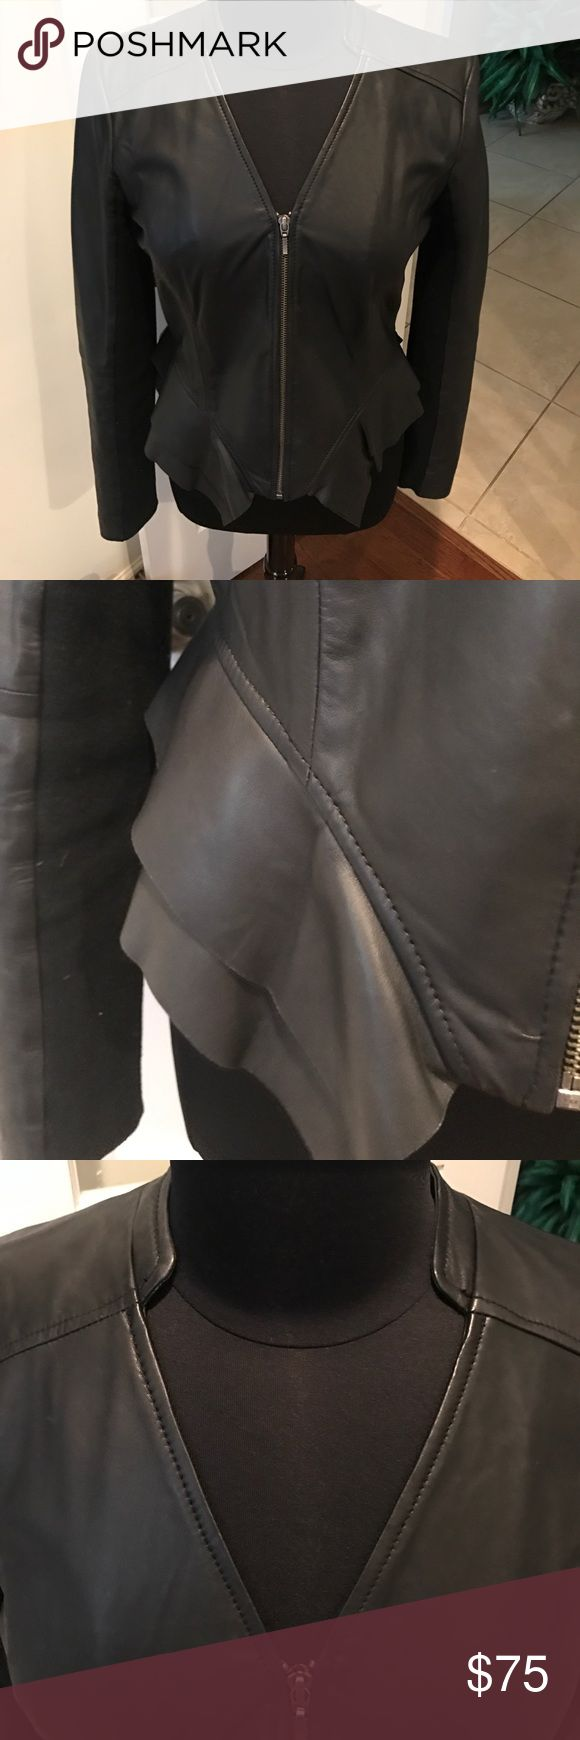 Hinge black leather short jacket Black leather long sleeves ladies jacket, with detailed contoured waistline all the way around, zipper front, v neck , ribbed fabric inset of sleeves( great for easy movement) Beautiful jacket to wear over cute evening top or sweater , wear a coat or wrap over it❄️ Hinge Jackets & Coats